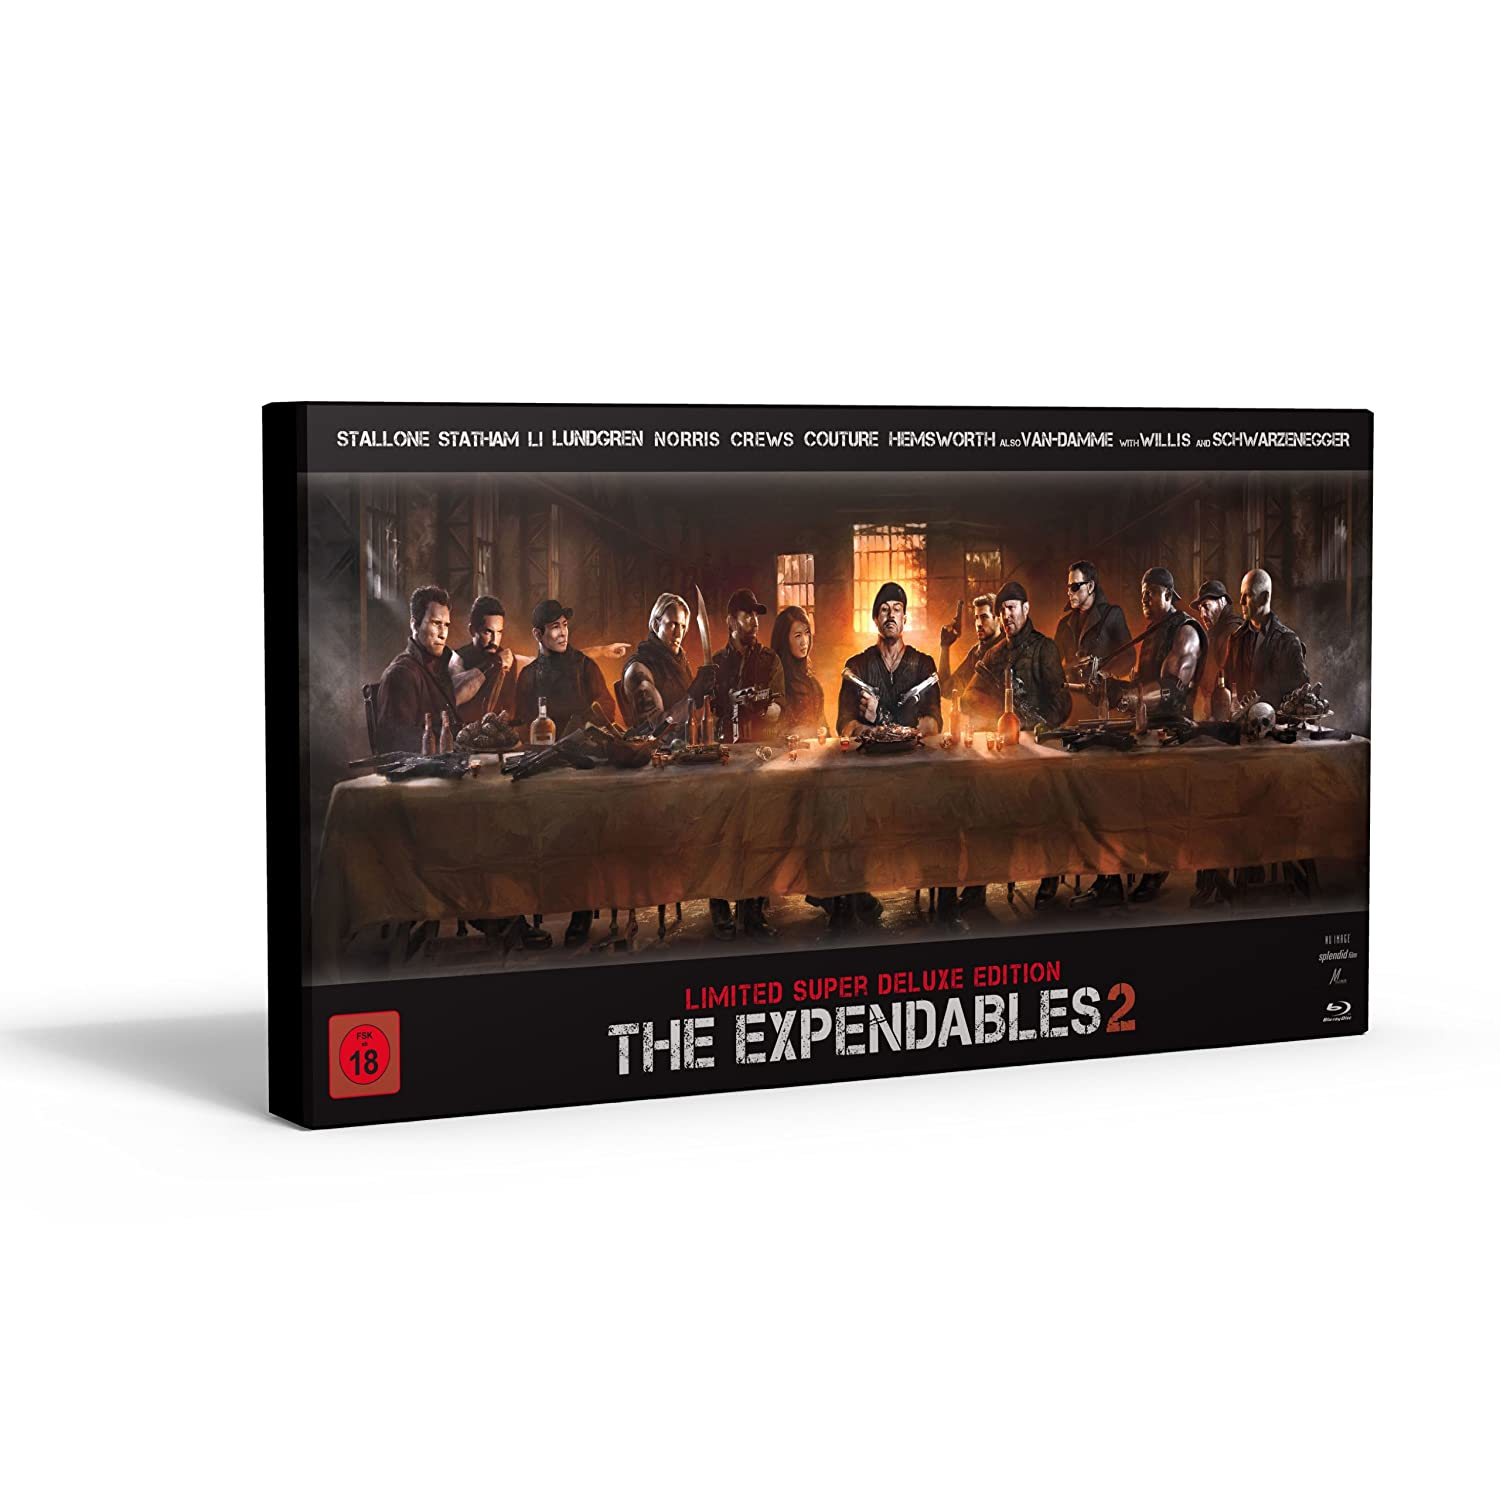 Expendables 2 Blu-ray Disc Boasts DTS Neo:X Audio